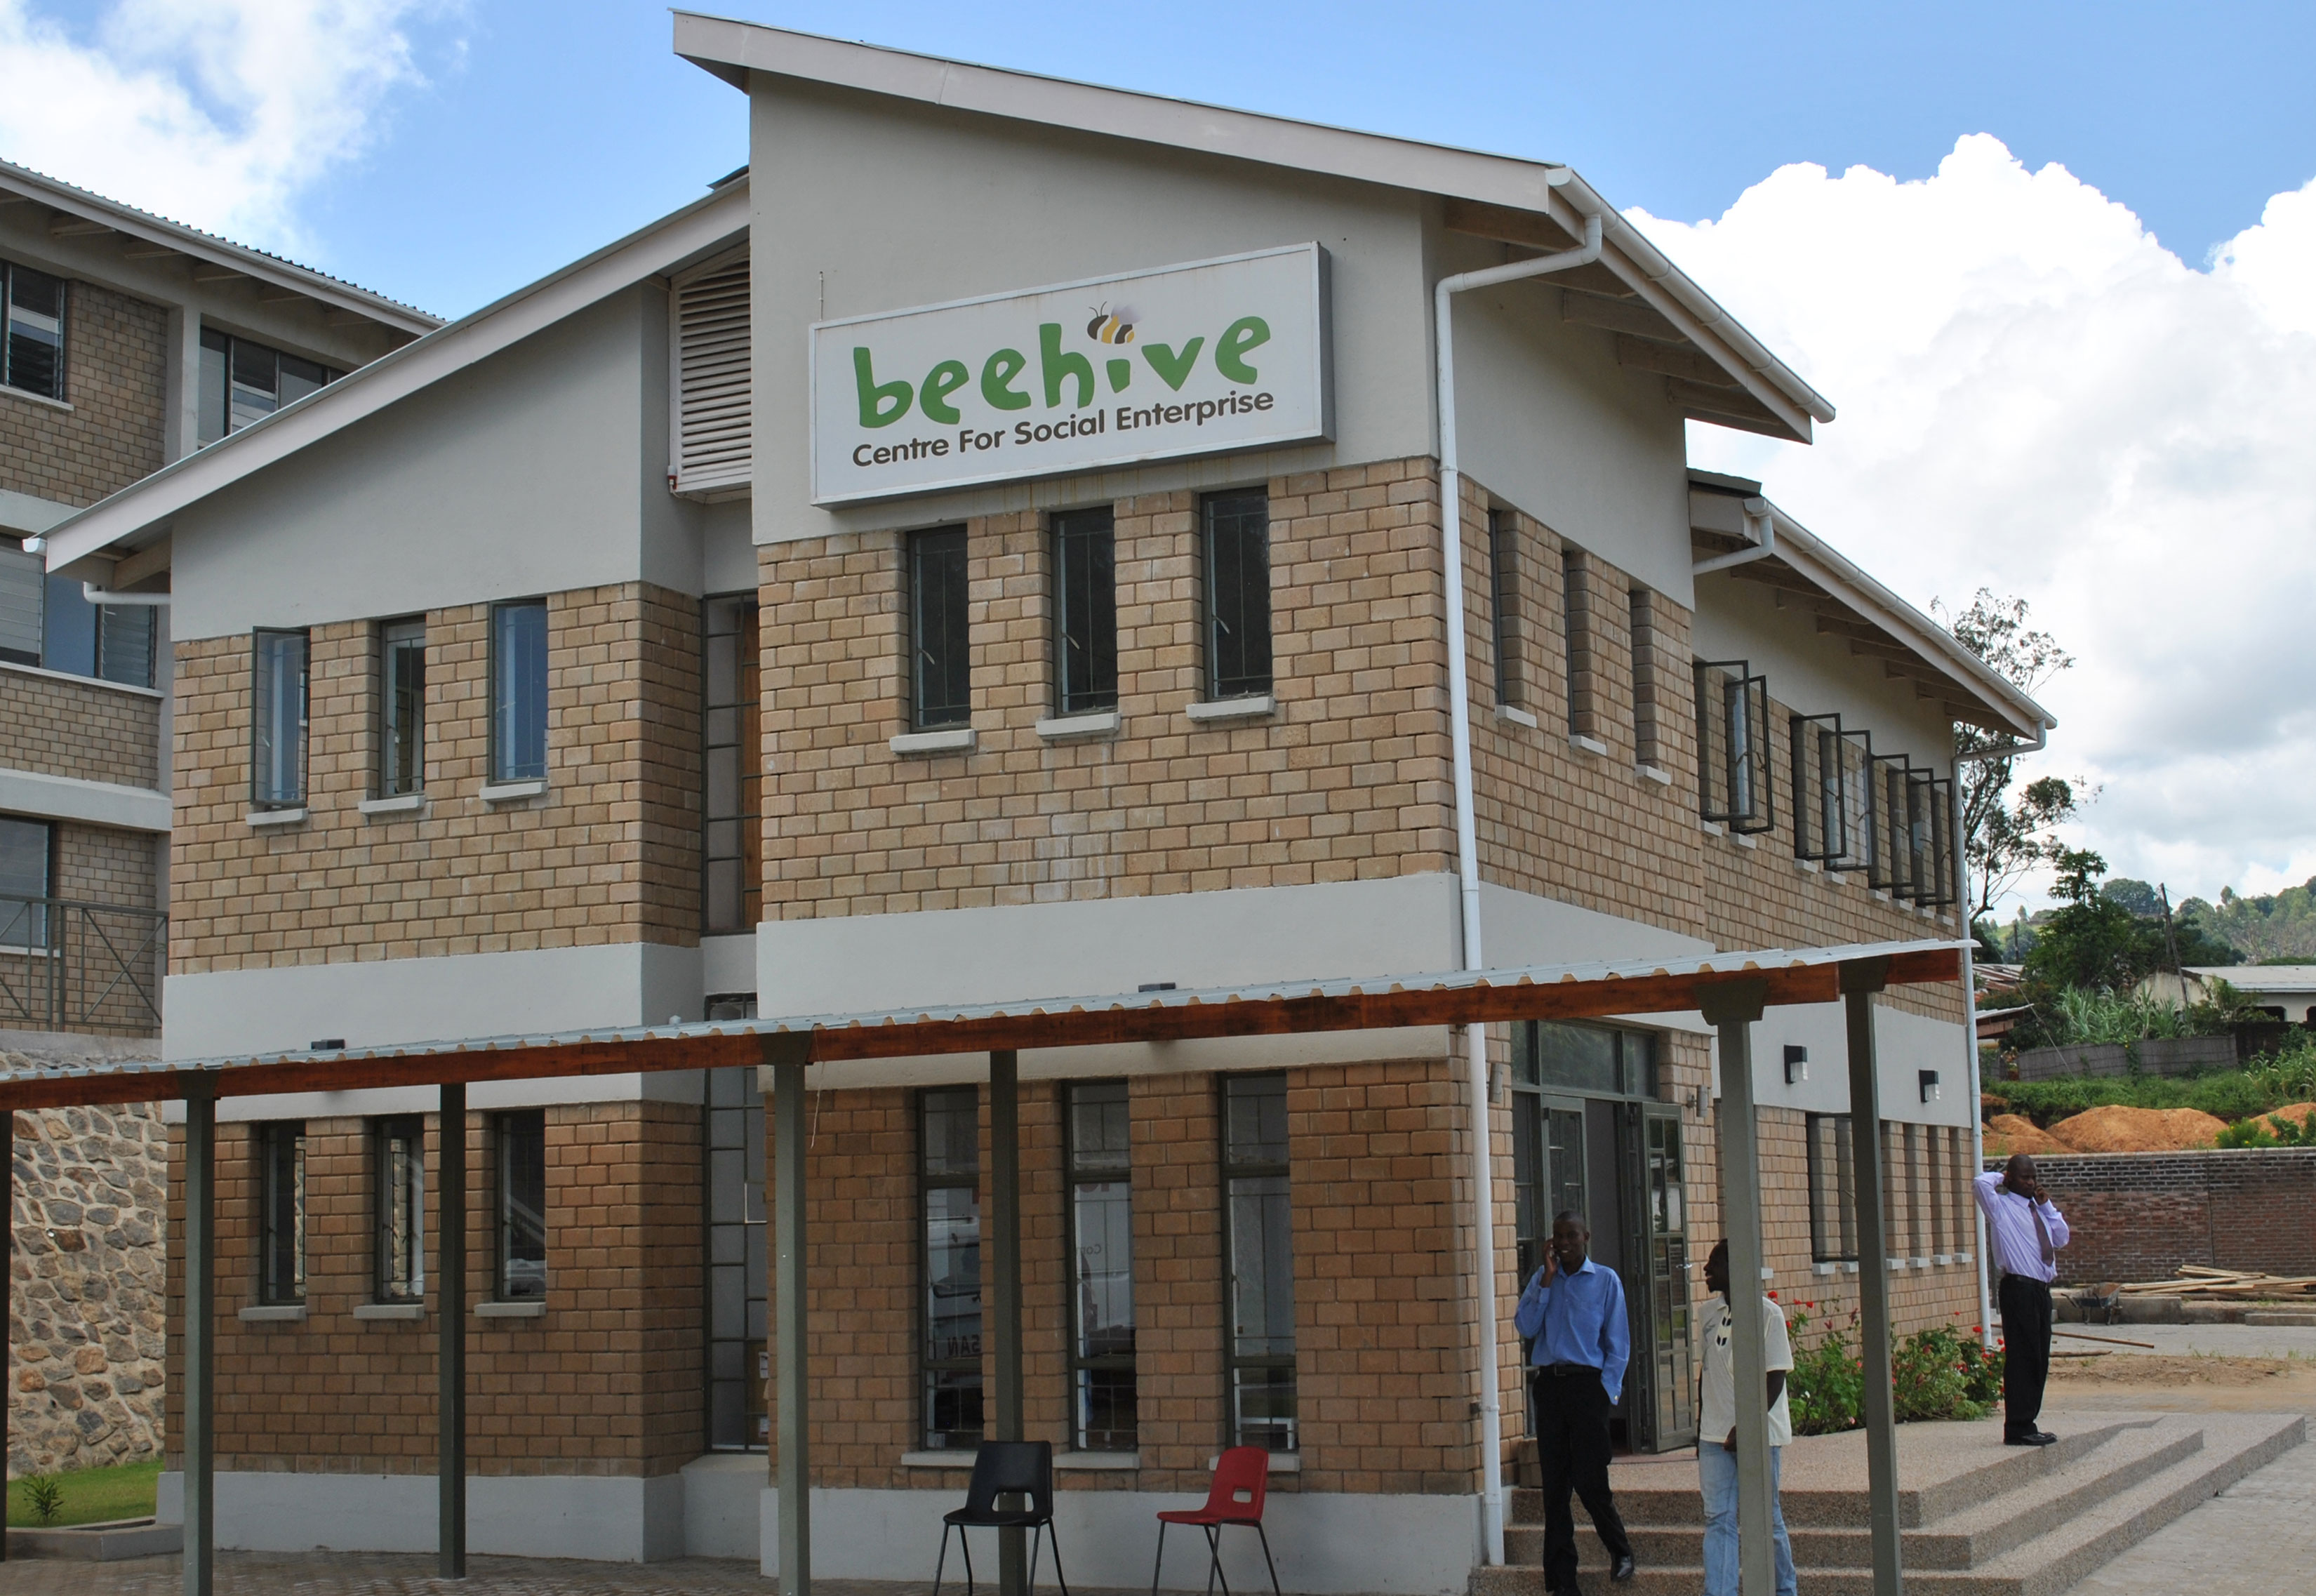 Beehive Administration building